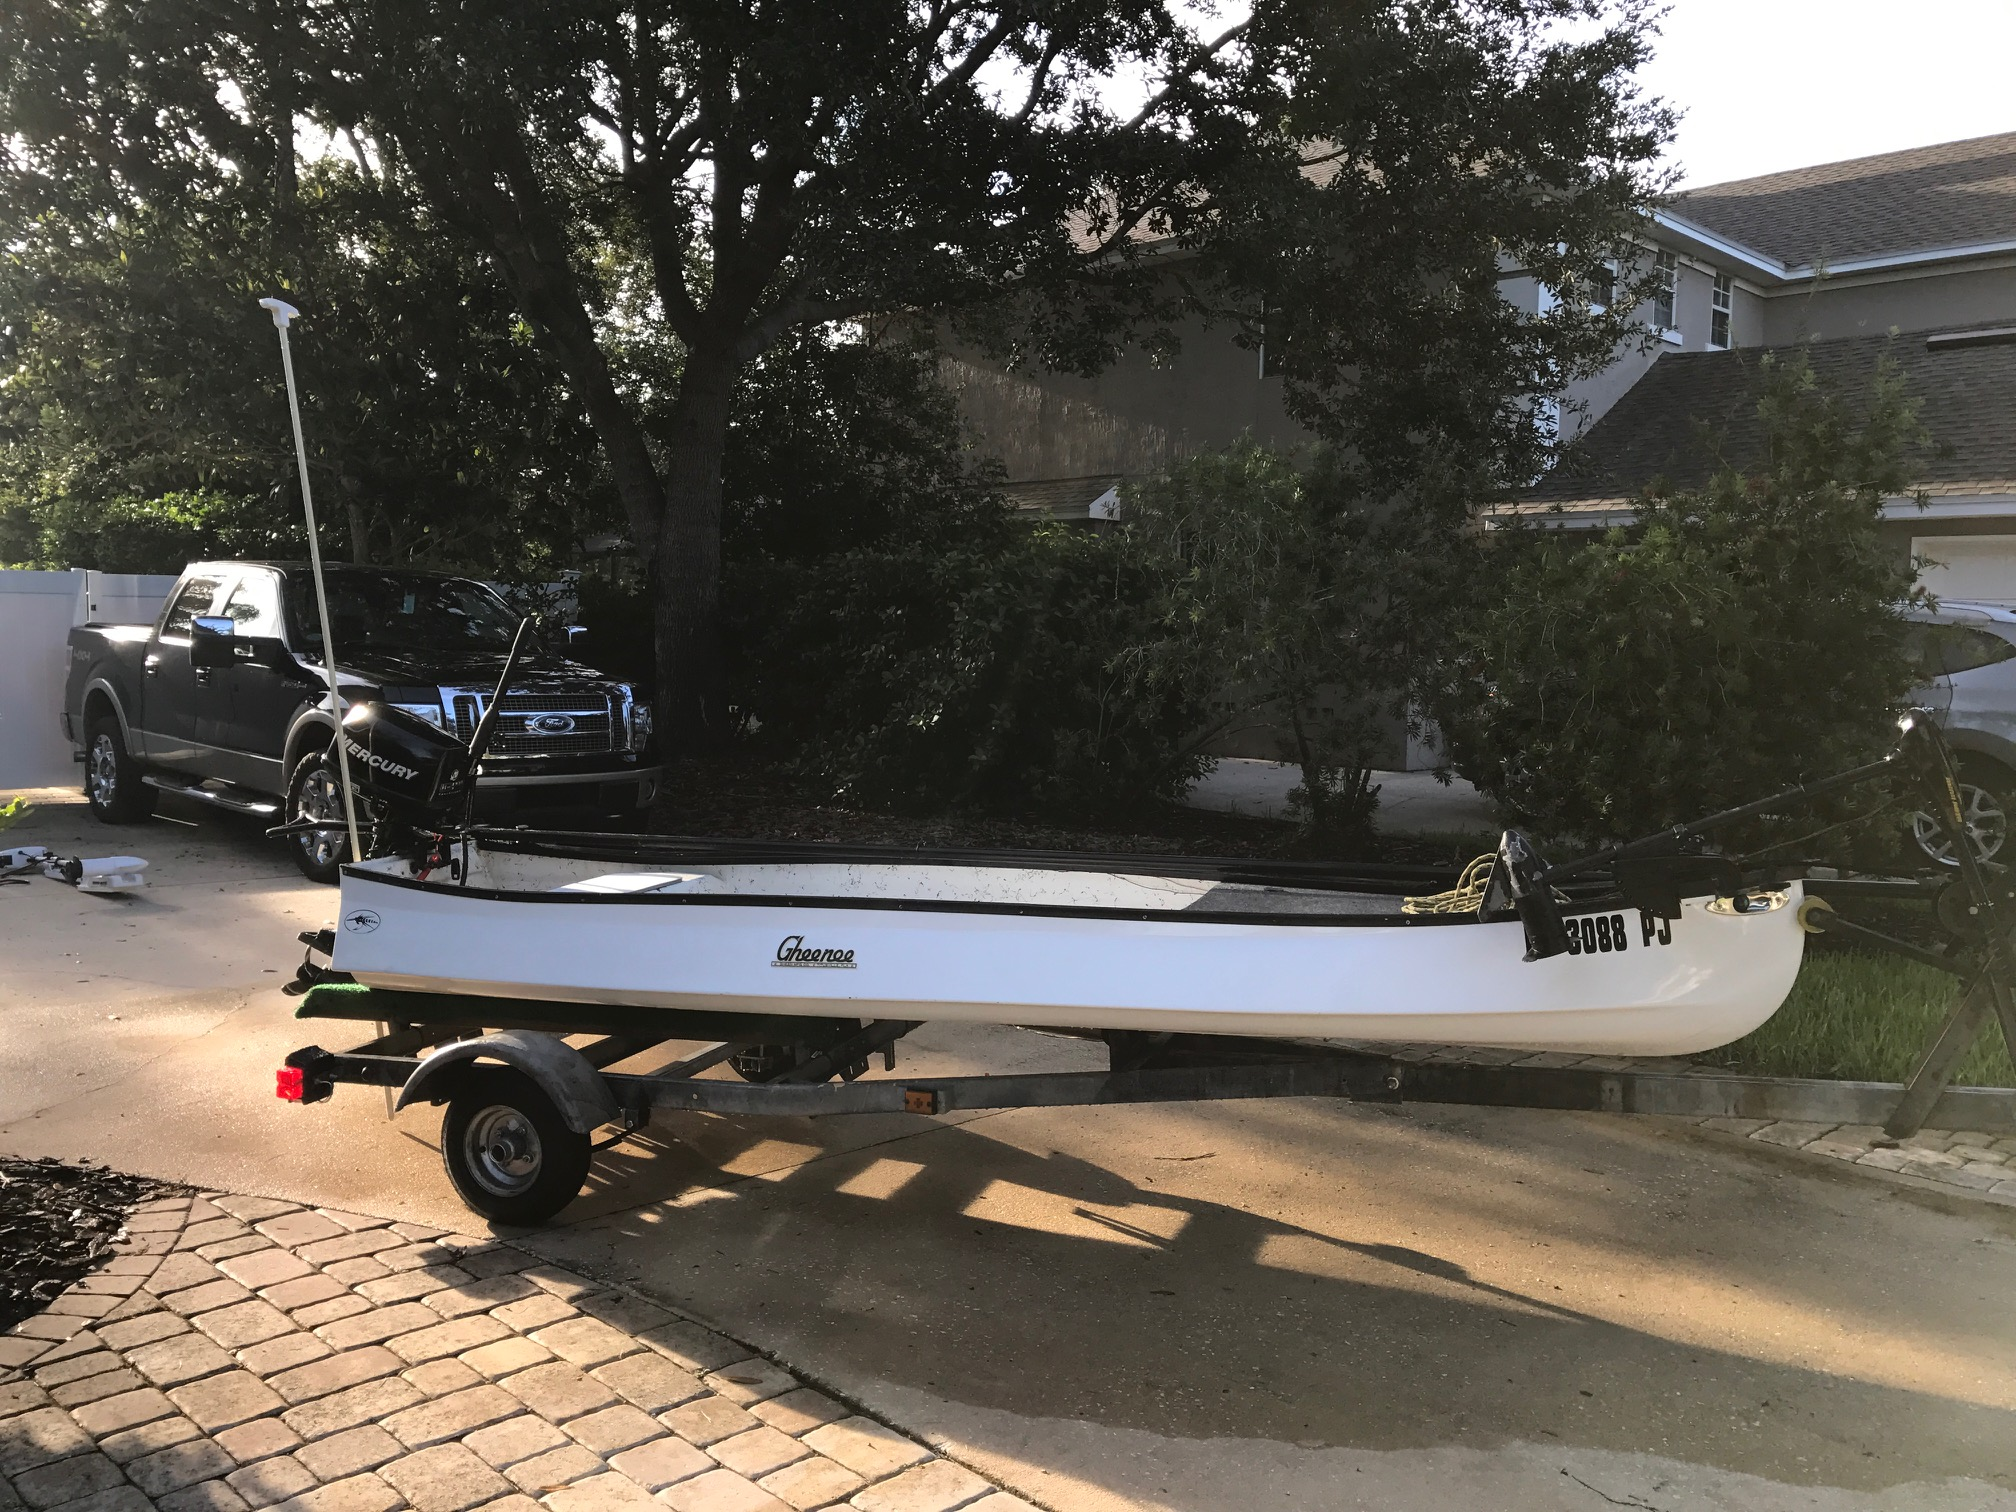 2012 Gheenoe 13' Highsider [SOLD] | Microskiff - Dedicated ...